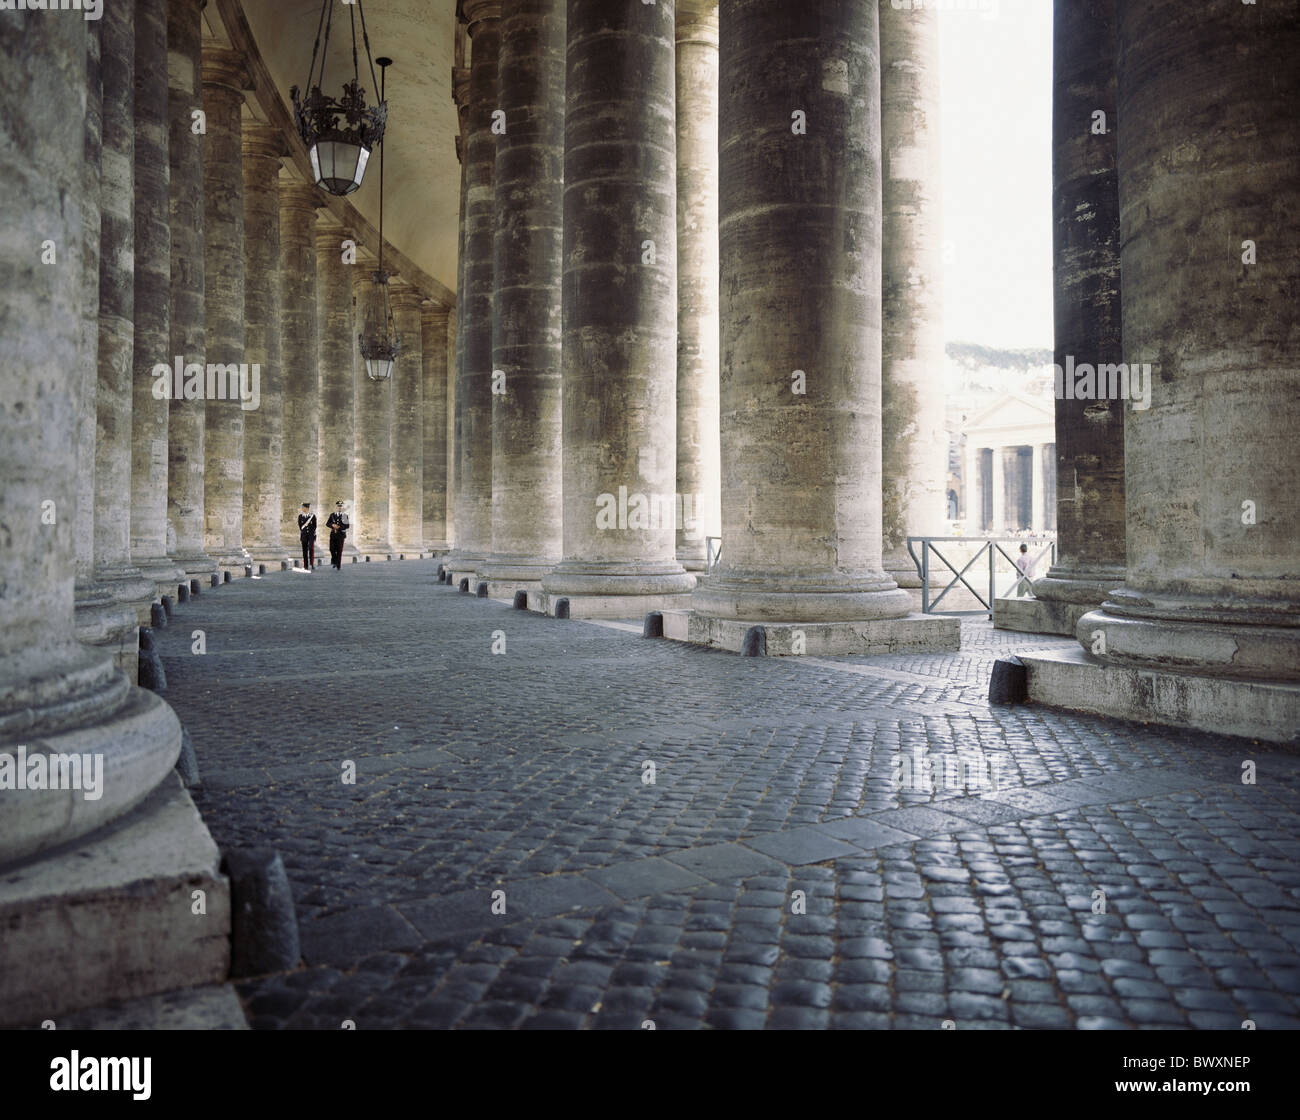 Italy Europe colonades Peter's place columns Vatican two policeman police officer - Stock Image